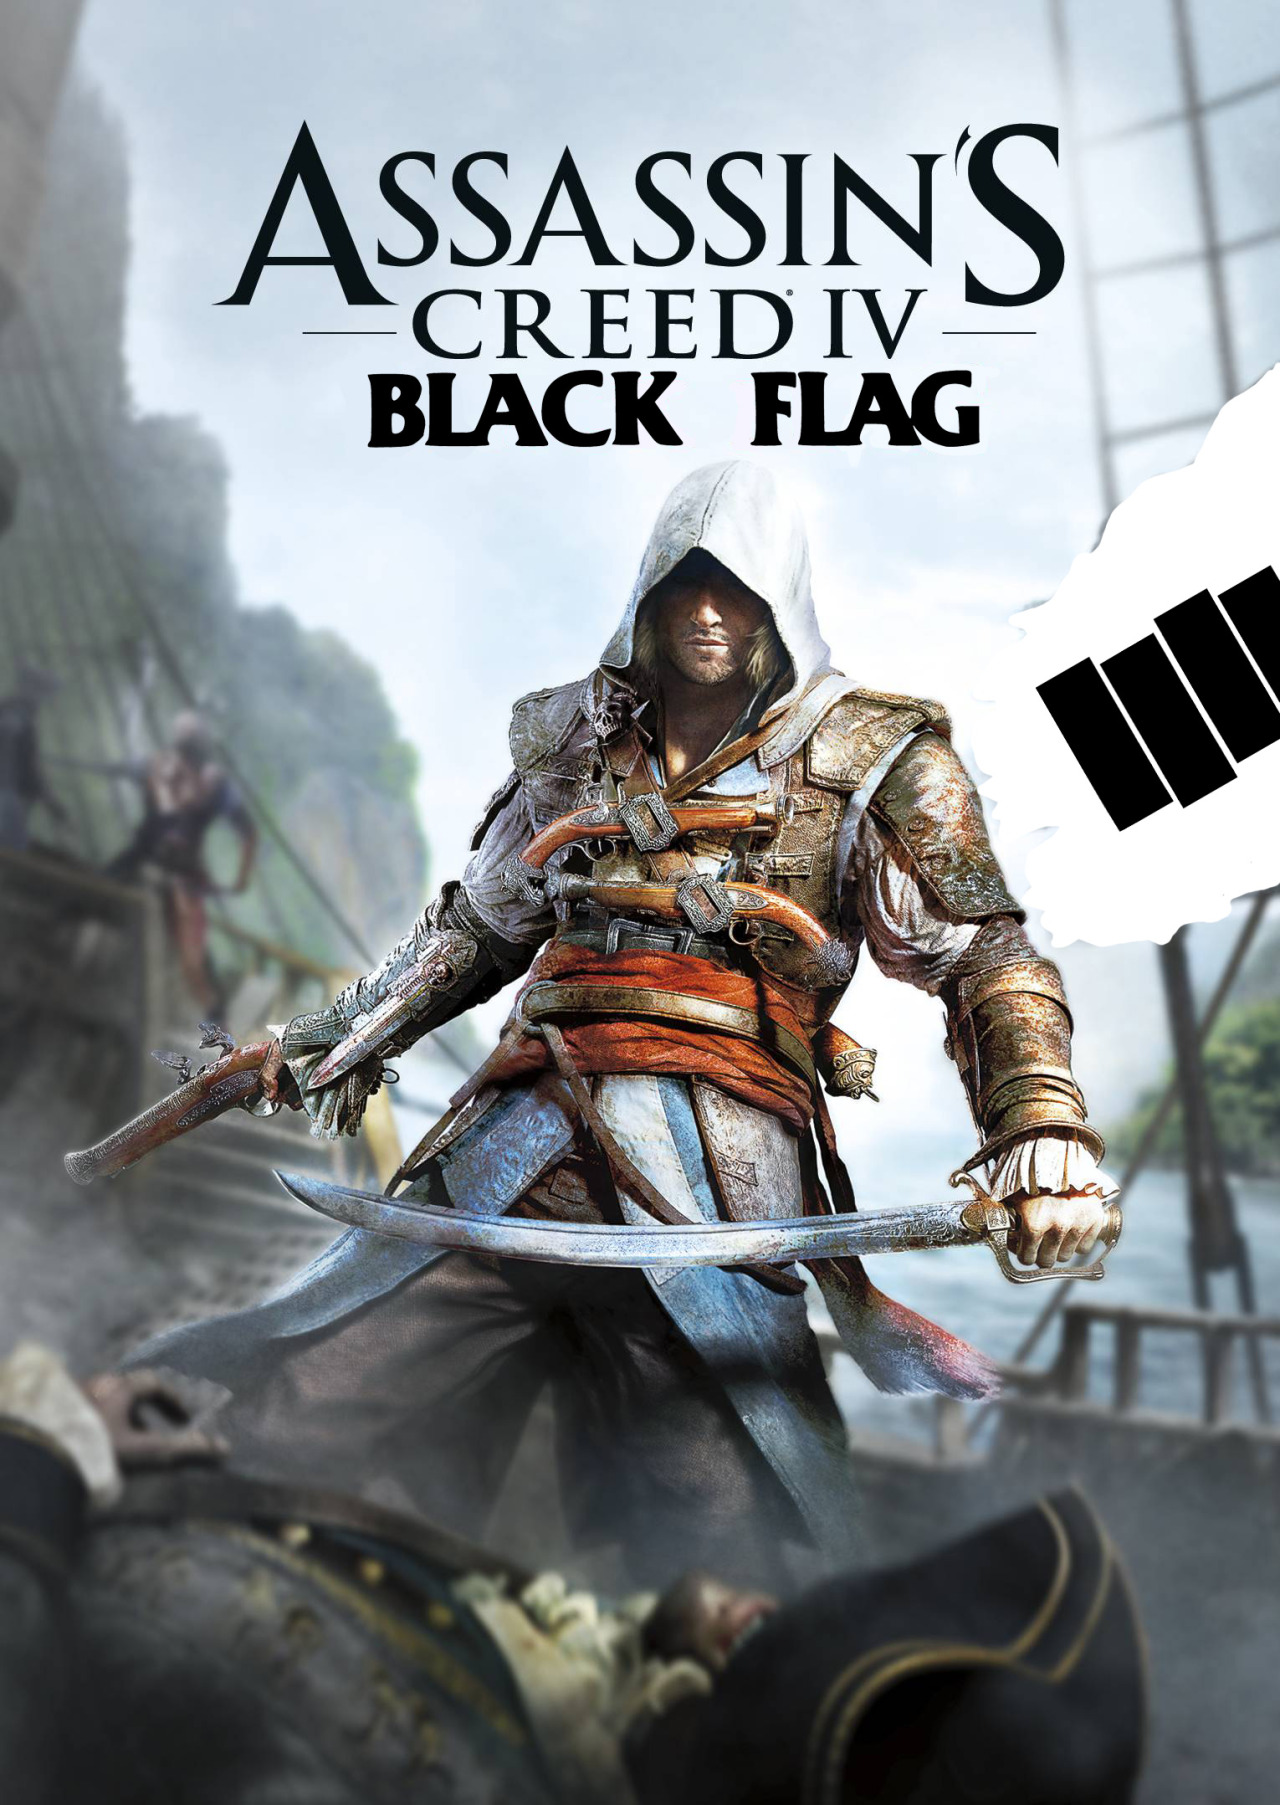 icatfish:  First thing I thought when I heard the title Assassin's Creed IV: Black Flag